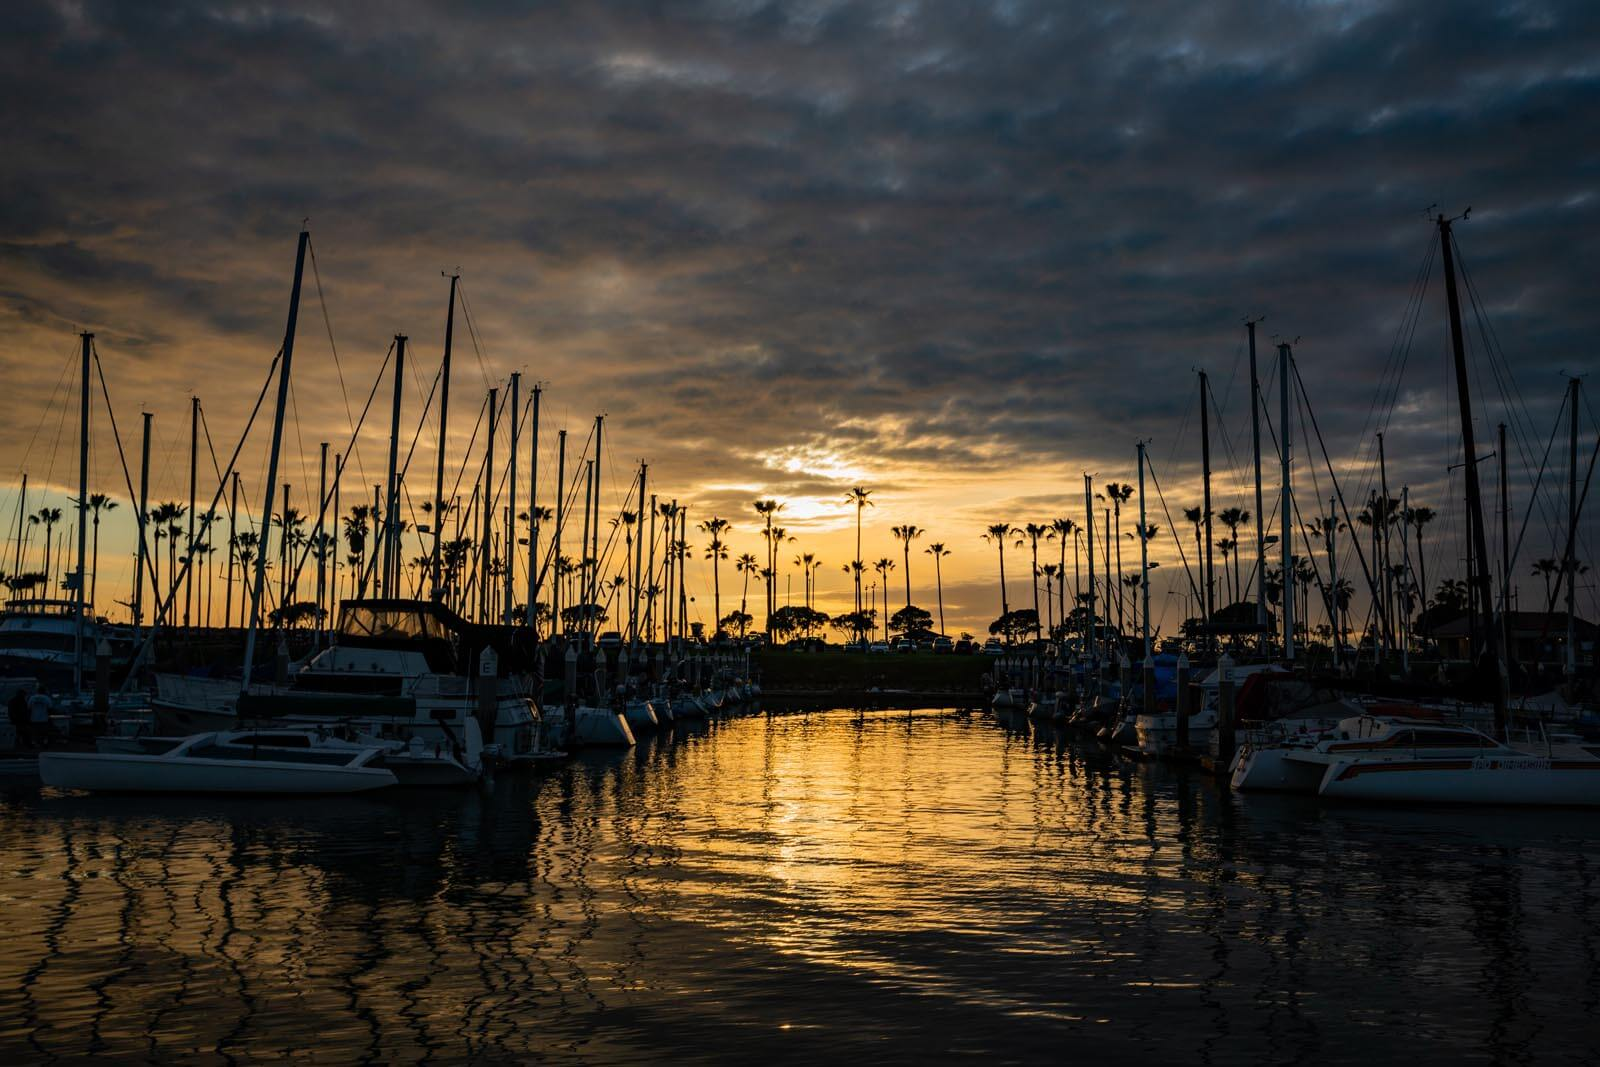 Ventura harbor in California at sunset